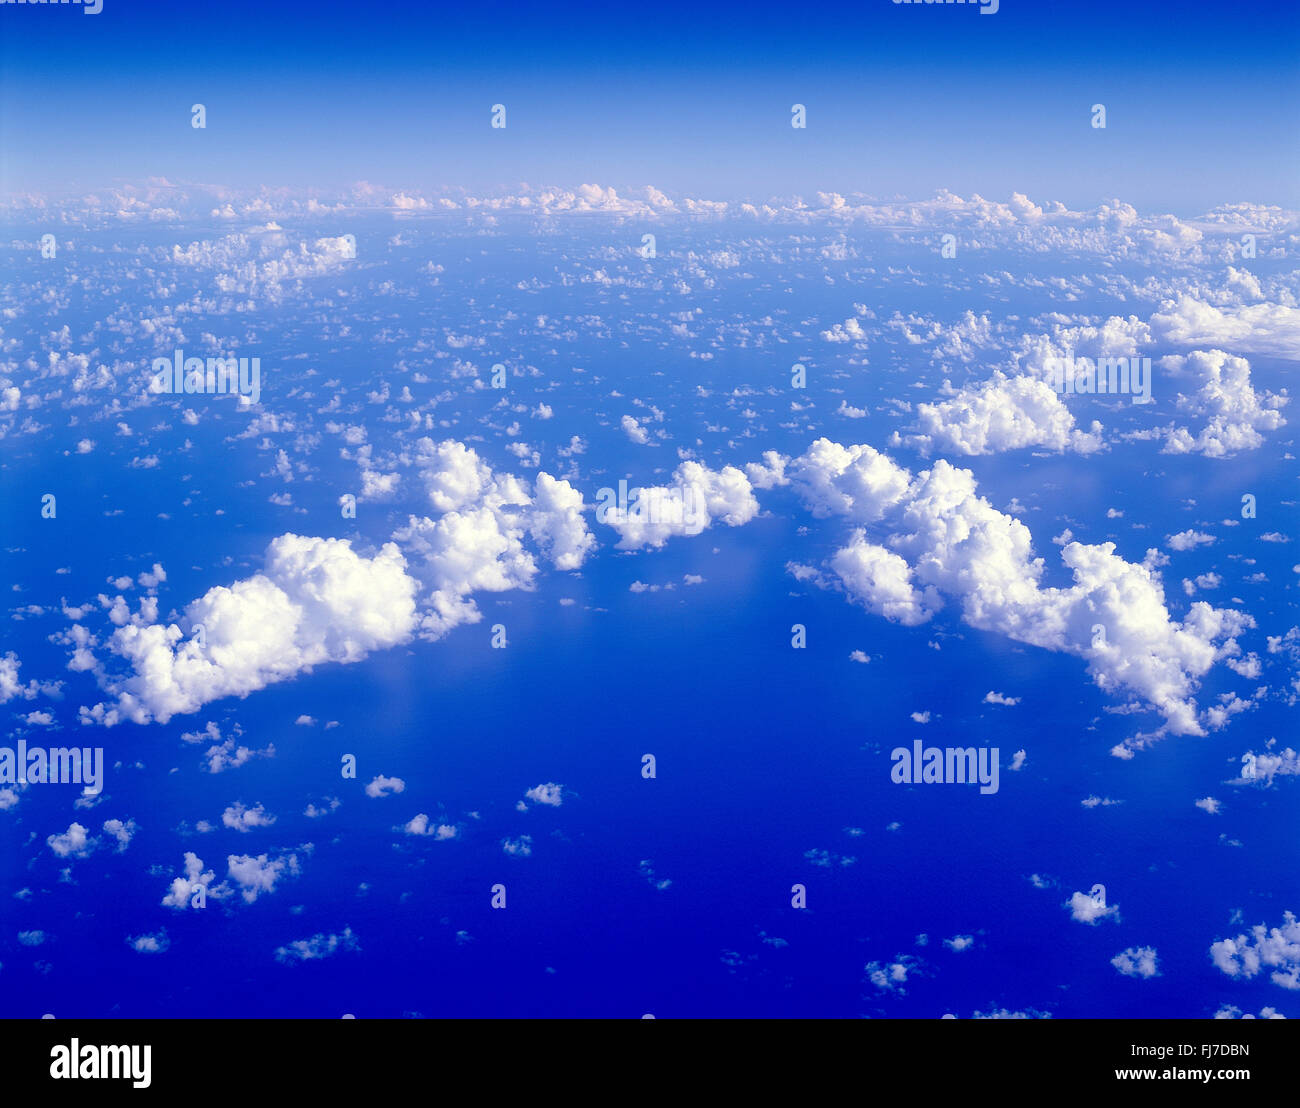 Aerial view of clouds from aircraft over sea - Stock Image